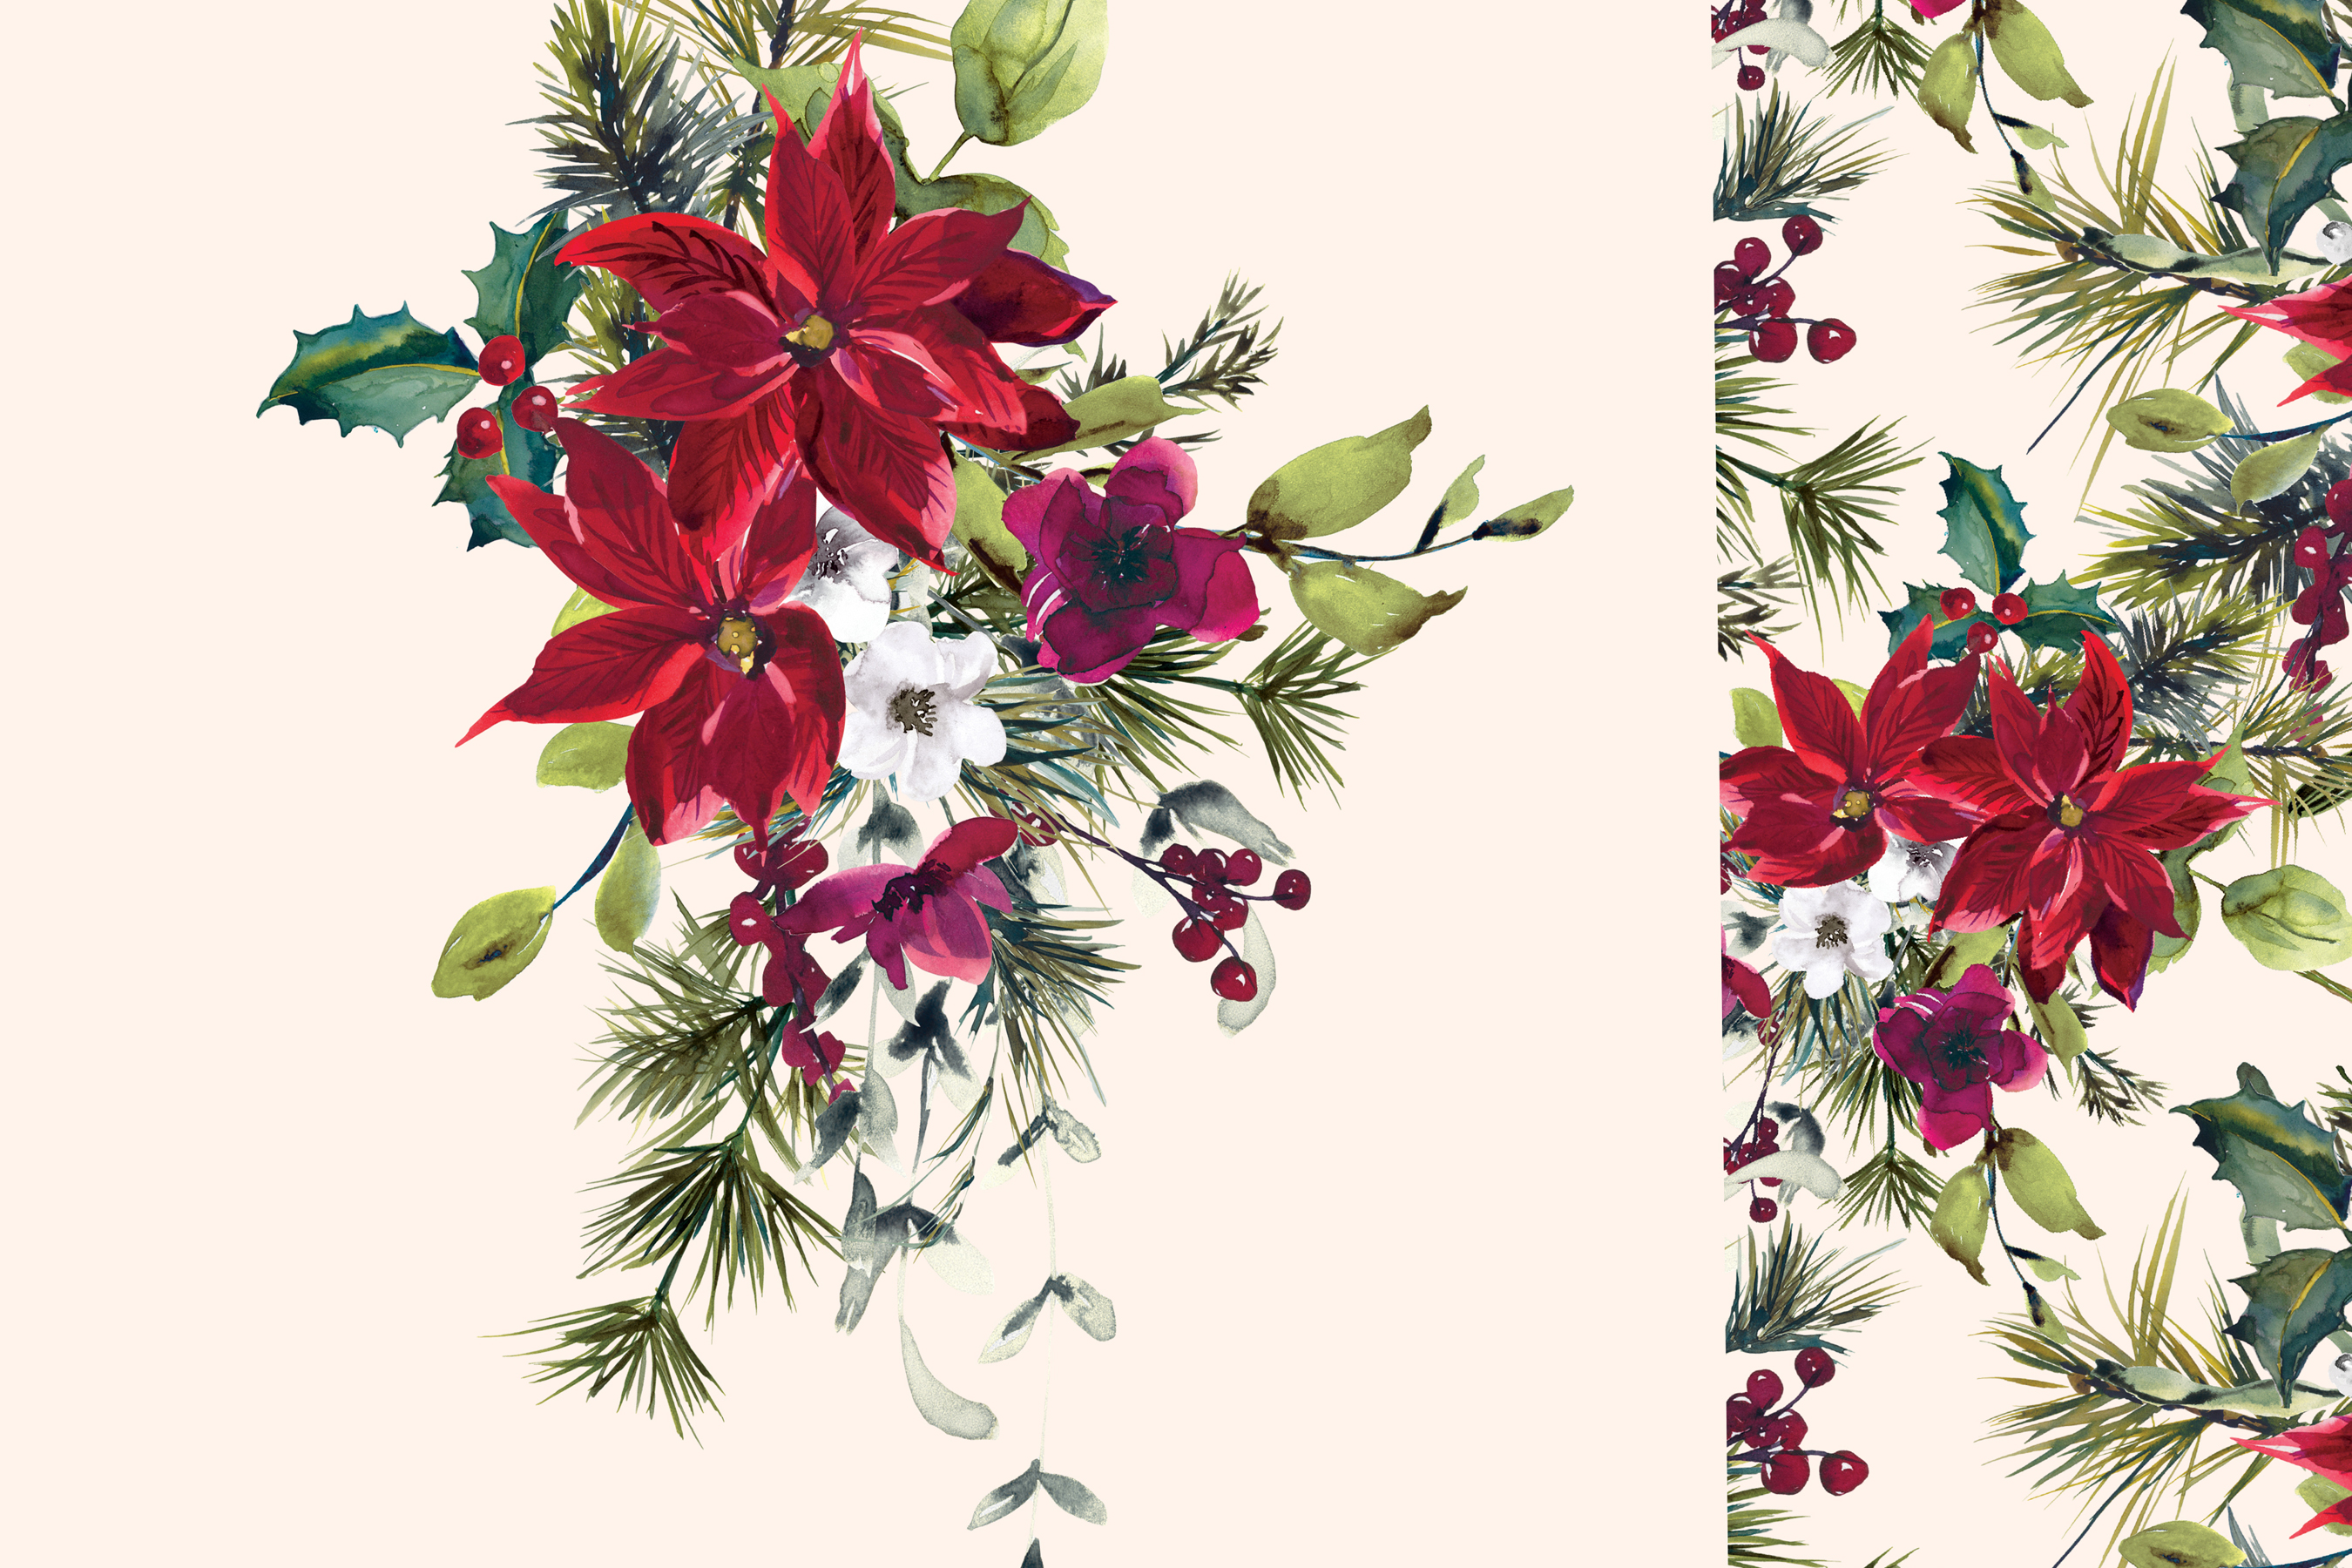 Watercolor Poinsettia Christmas Clipart example image 3